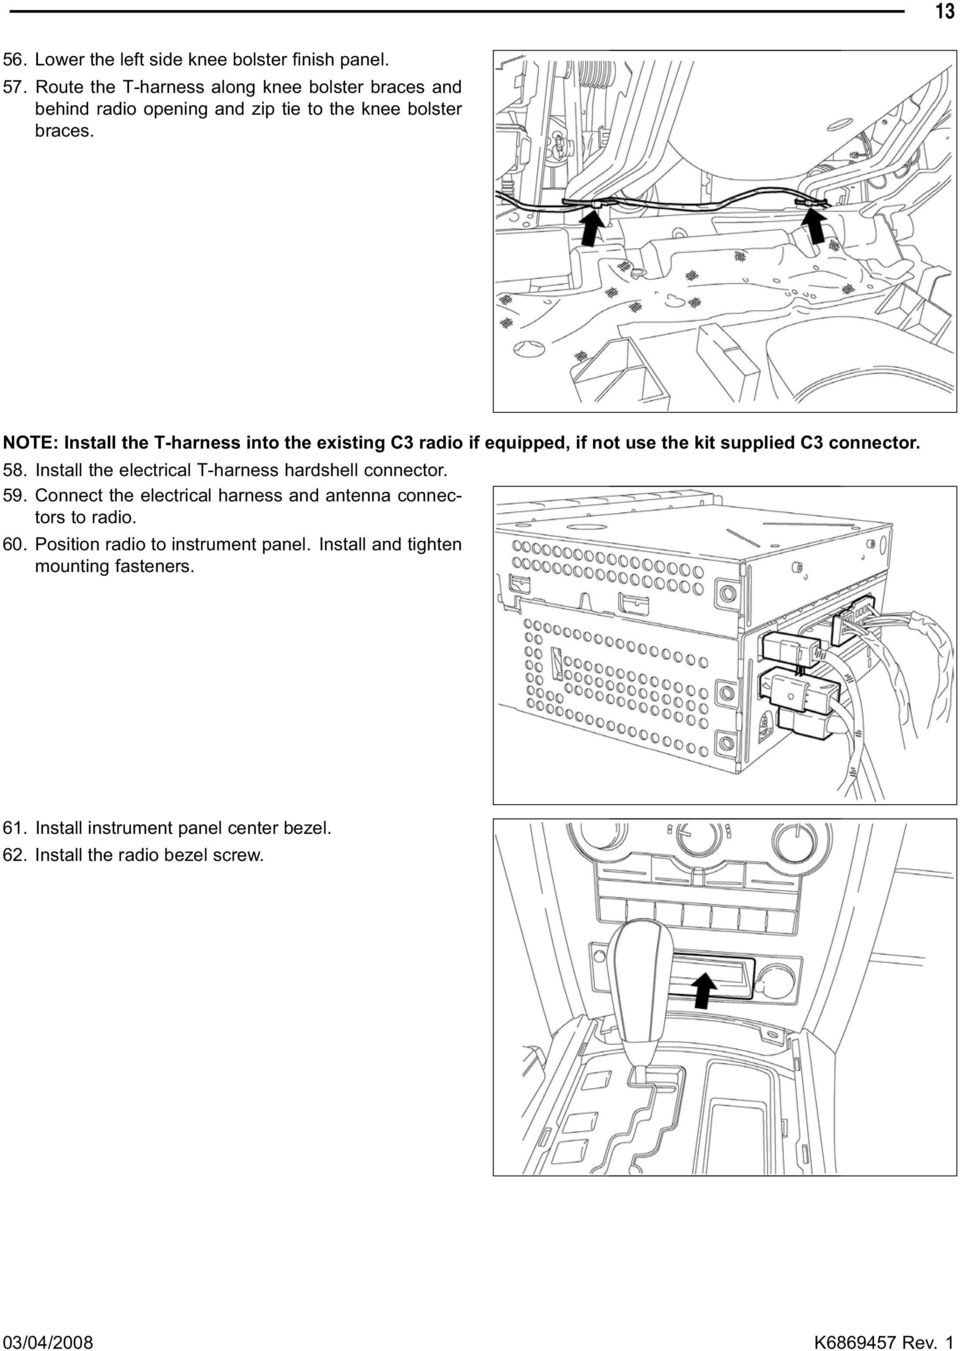 Backup Camera Jeep Commander Grand Cherokee Pdf 57 Vw Wiring Harness Installation Note Install The T Into Existing C3 Radio If Equipped